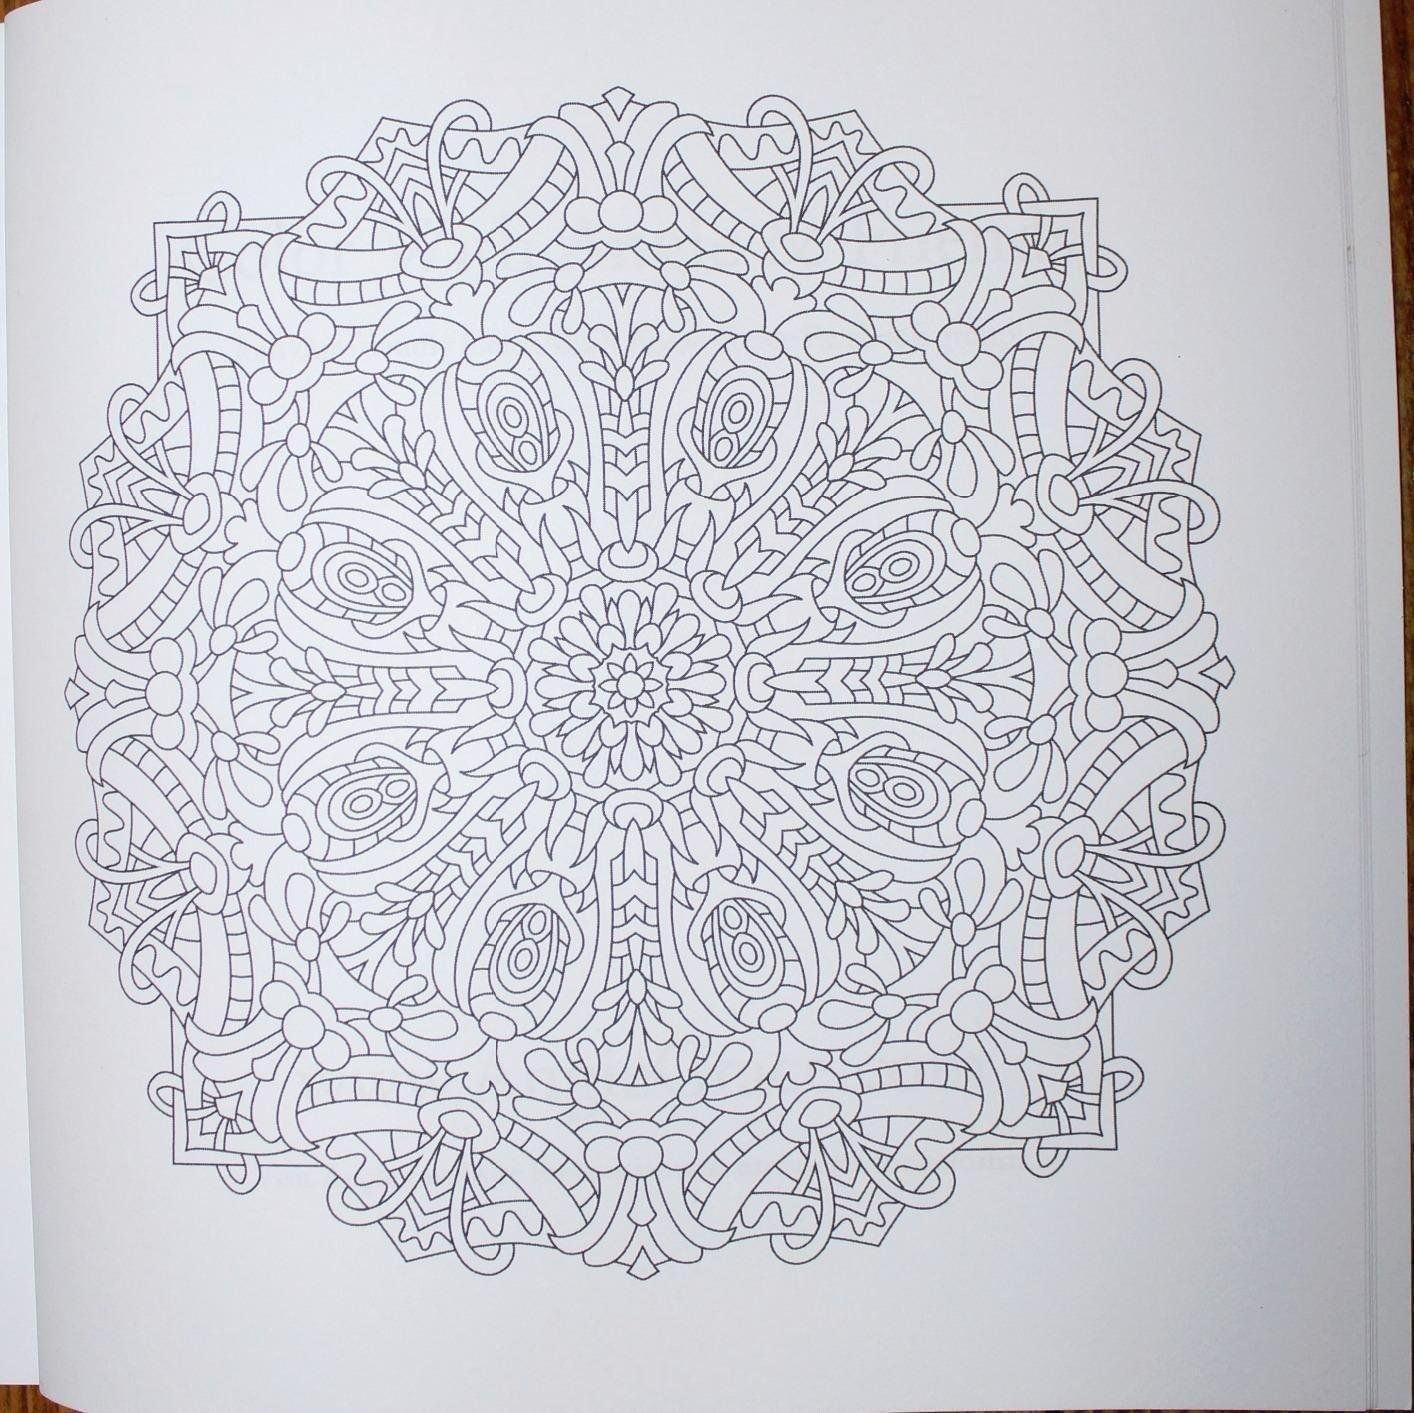 Colourtation anti stress colouring book for adults volume 1 - Centered Angie S Extreme Stress Menders Volume 2 Angie Grace 9781515007340 Amazon Mandala Coloringcoloring